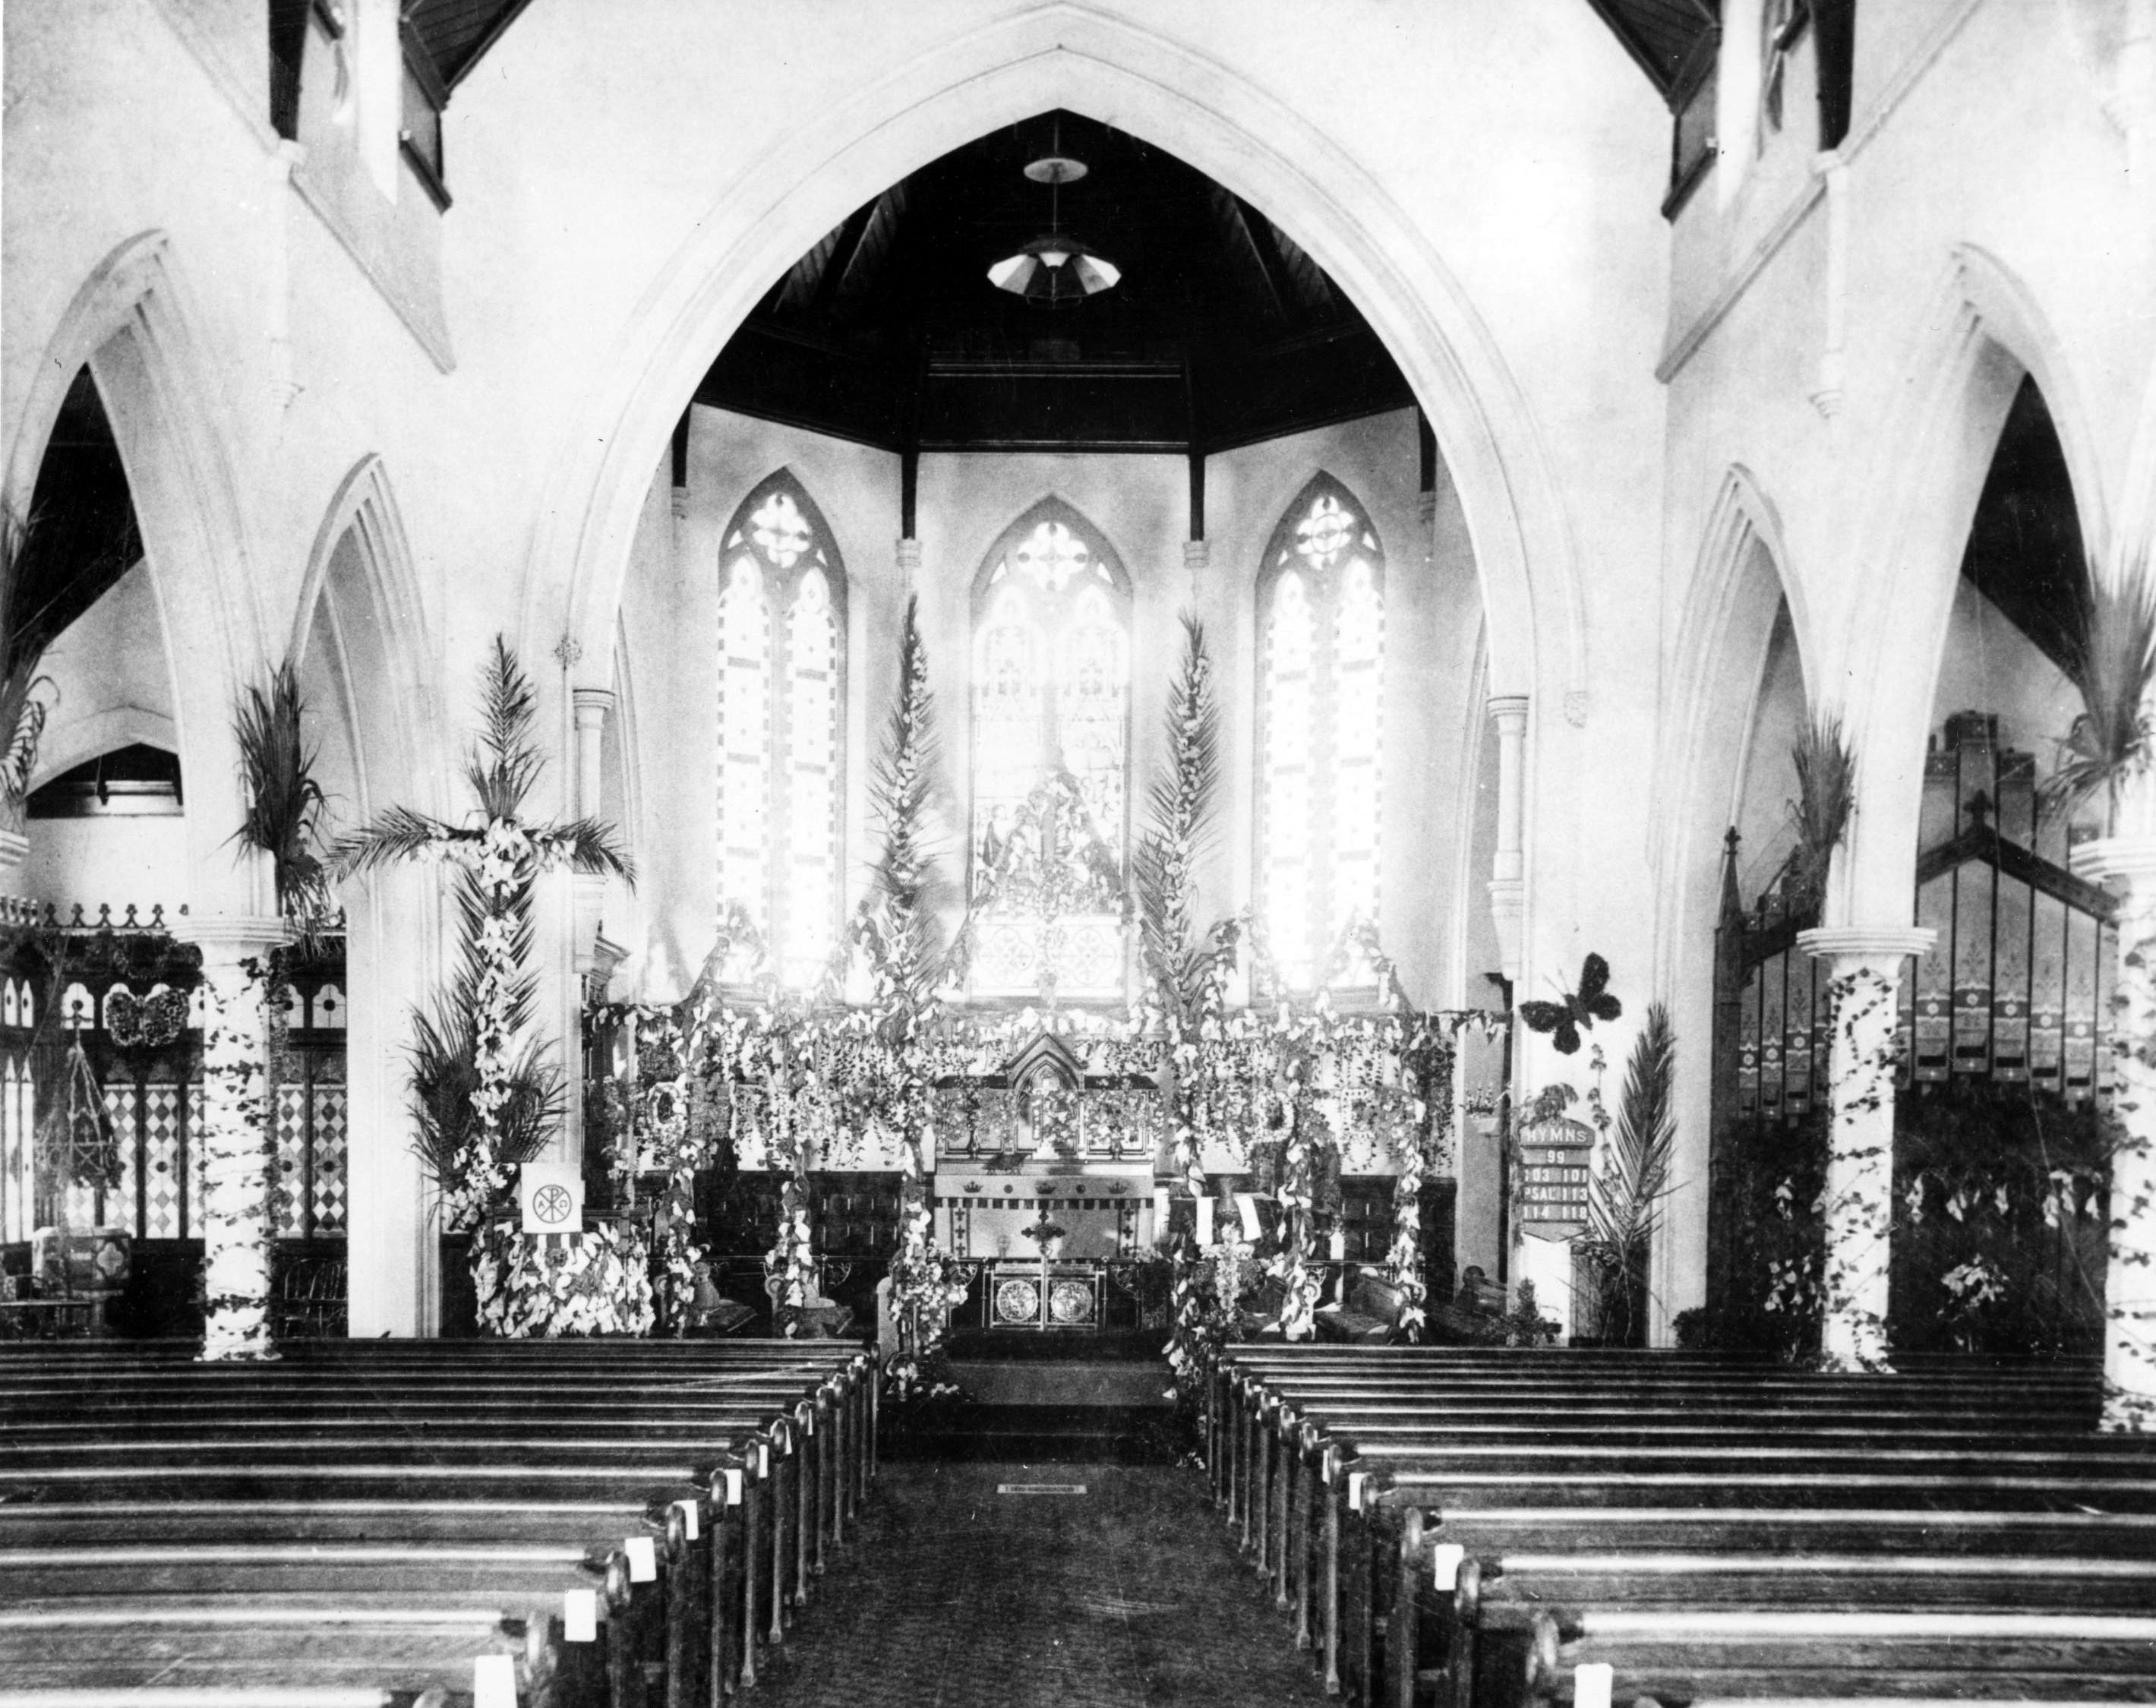 Pews and altar of Saint Paul's Episcopal Church, [s.d.]